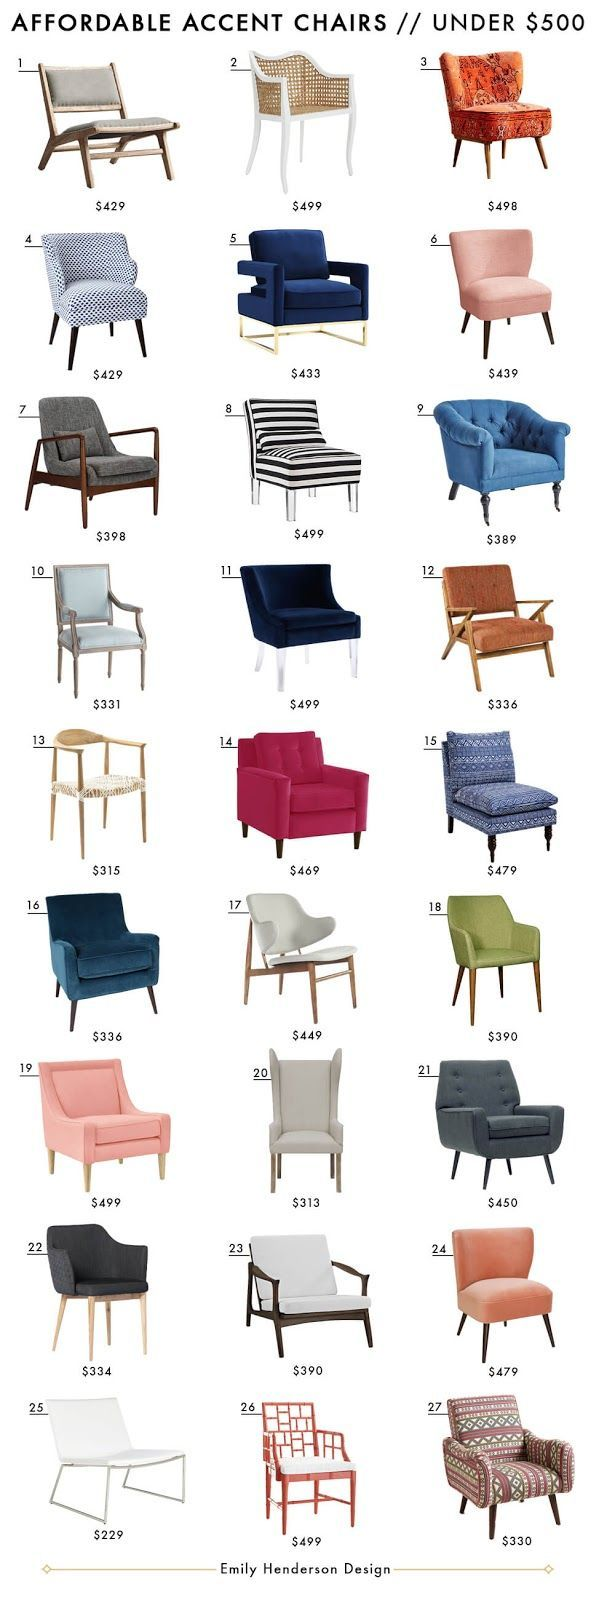 Affordable Accent Chairs Under $500 Emily Henderson Design